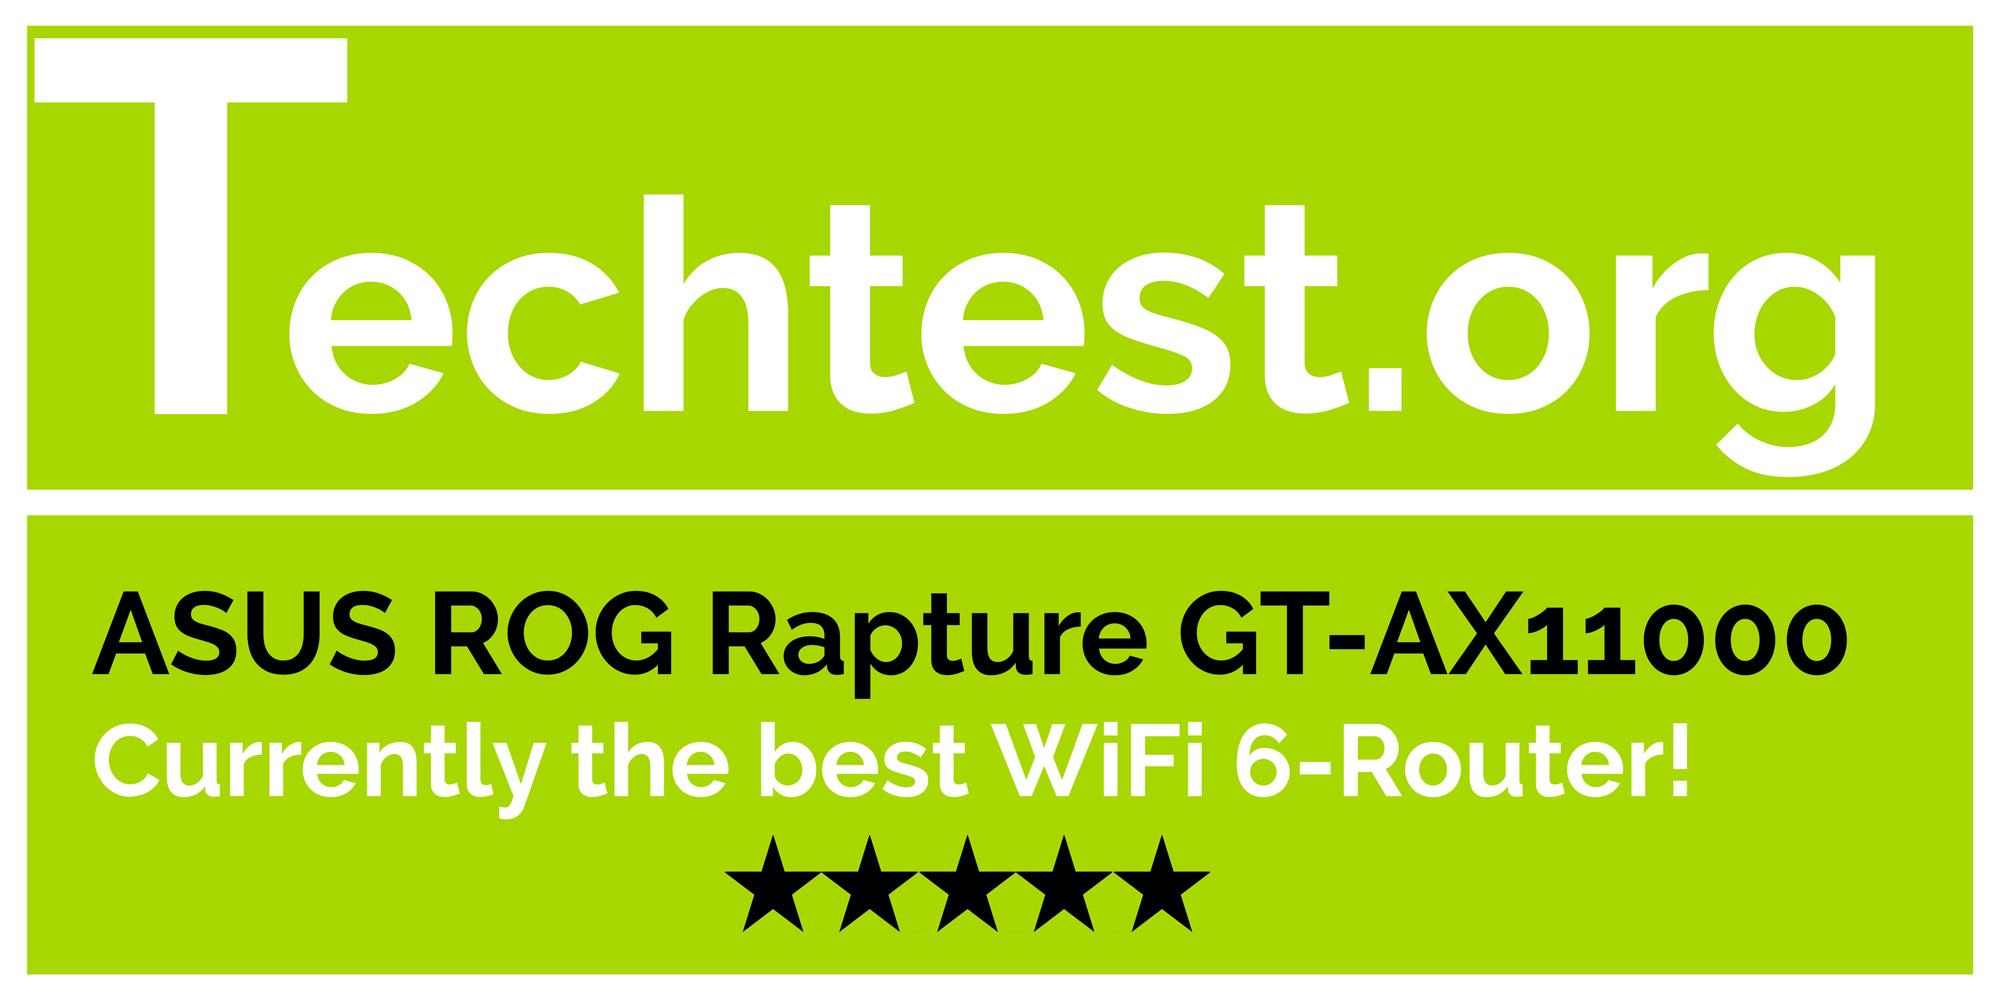 Currently the best WiFi 6-Router!